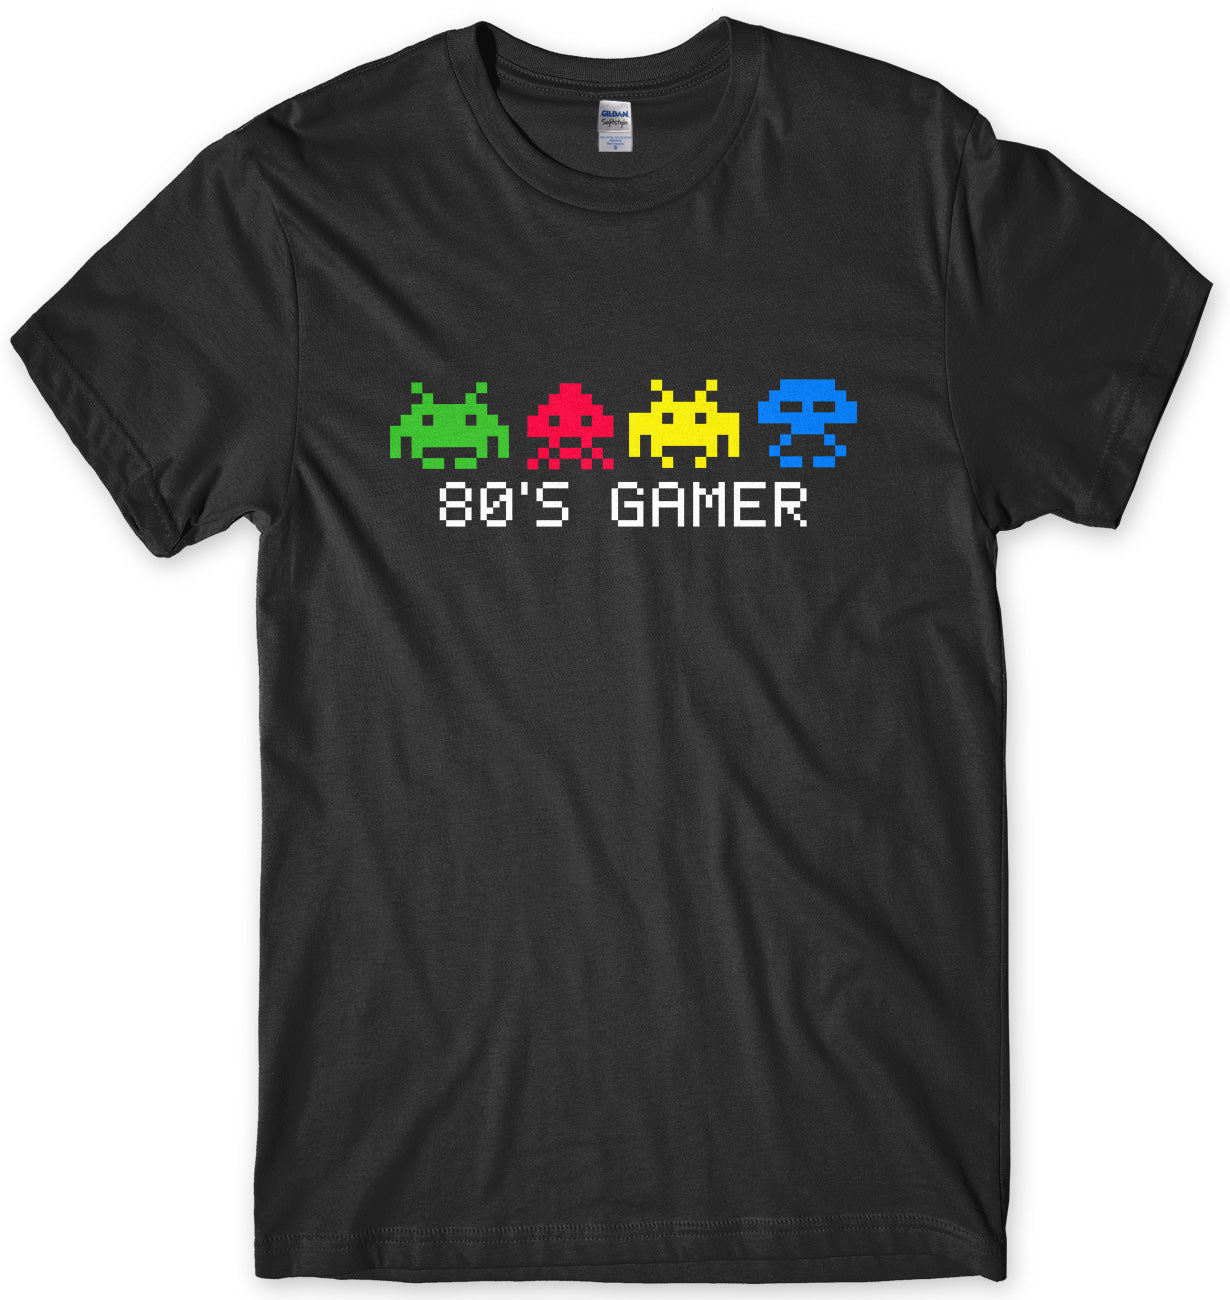 INVADERS FROM SPACE 80'S GAMER MENS UNISEX T-SHIRT